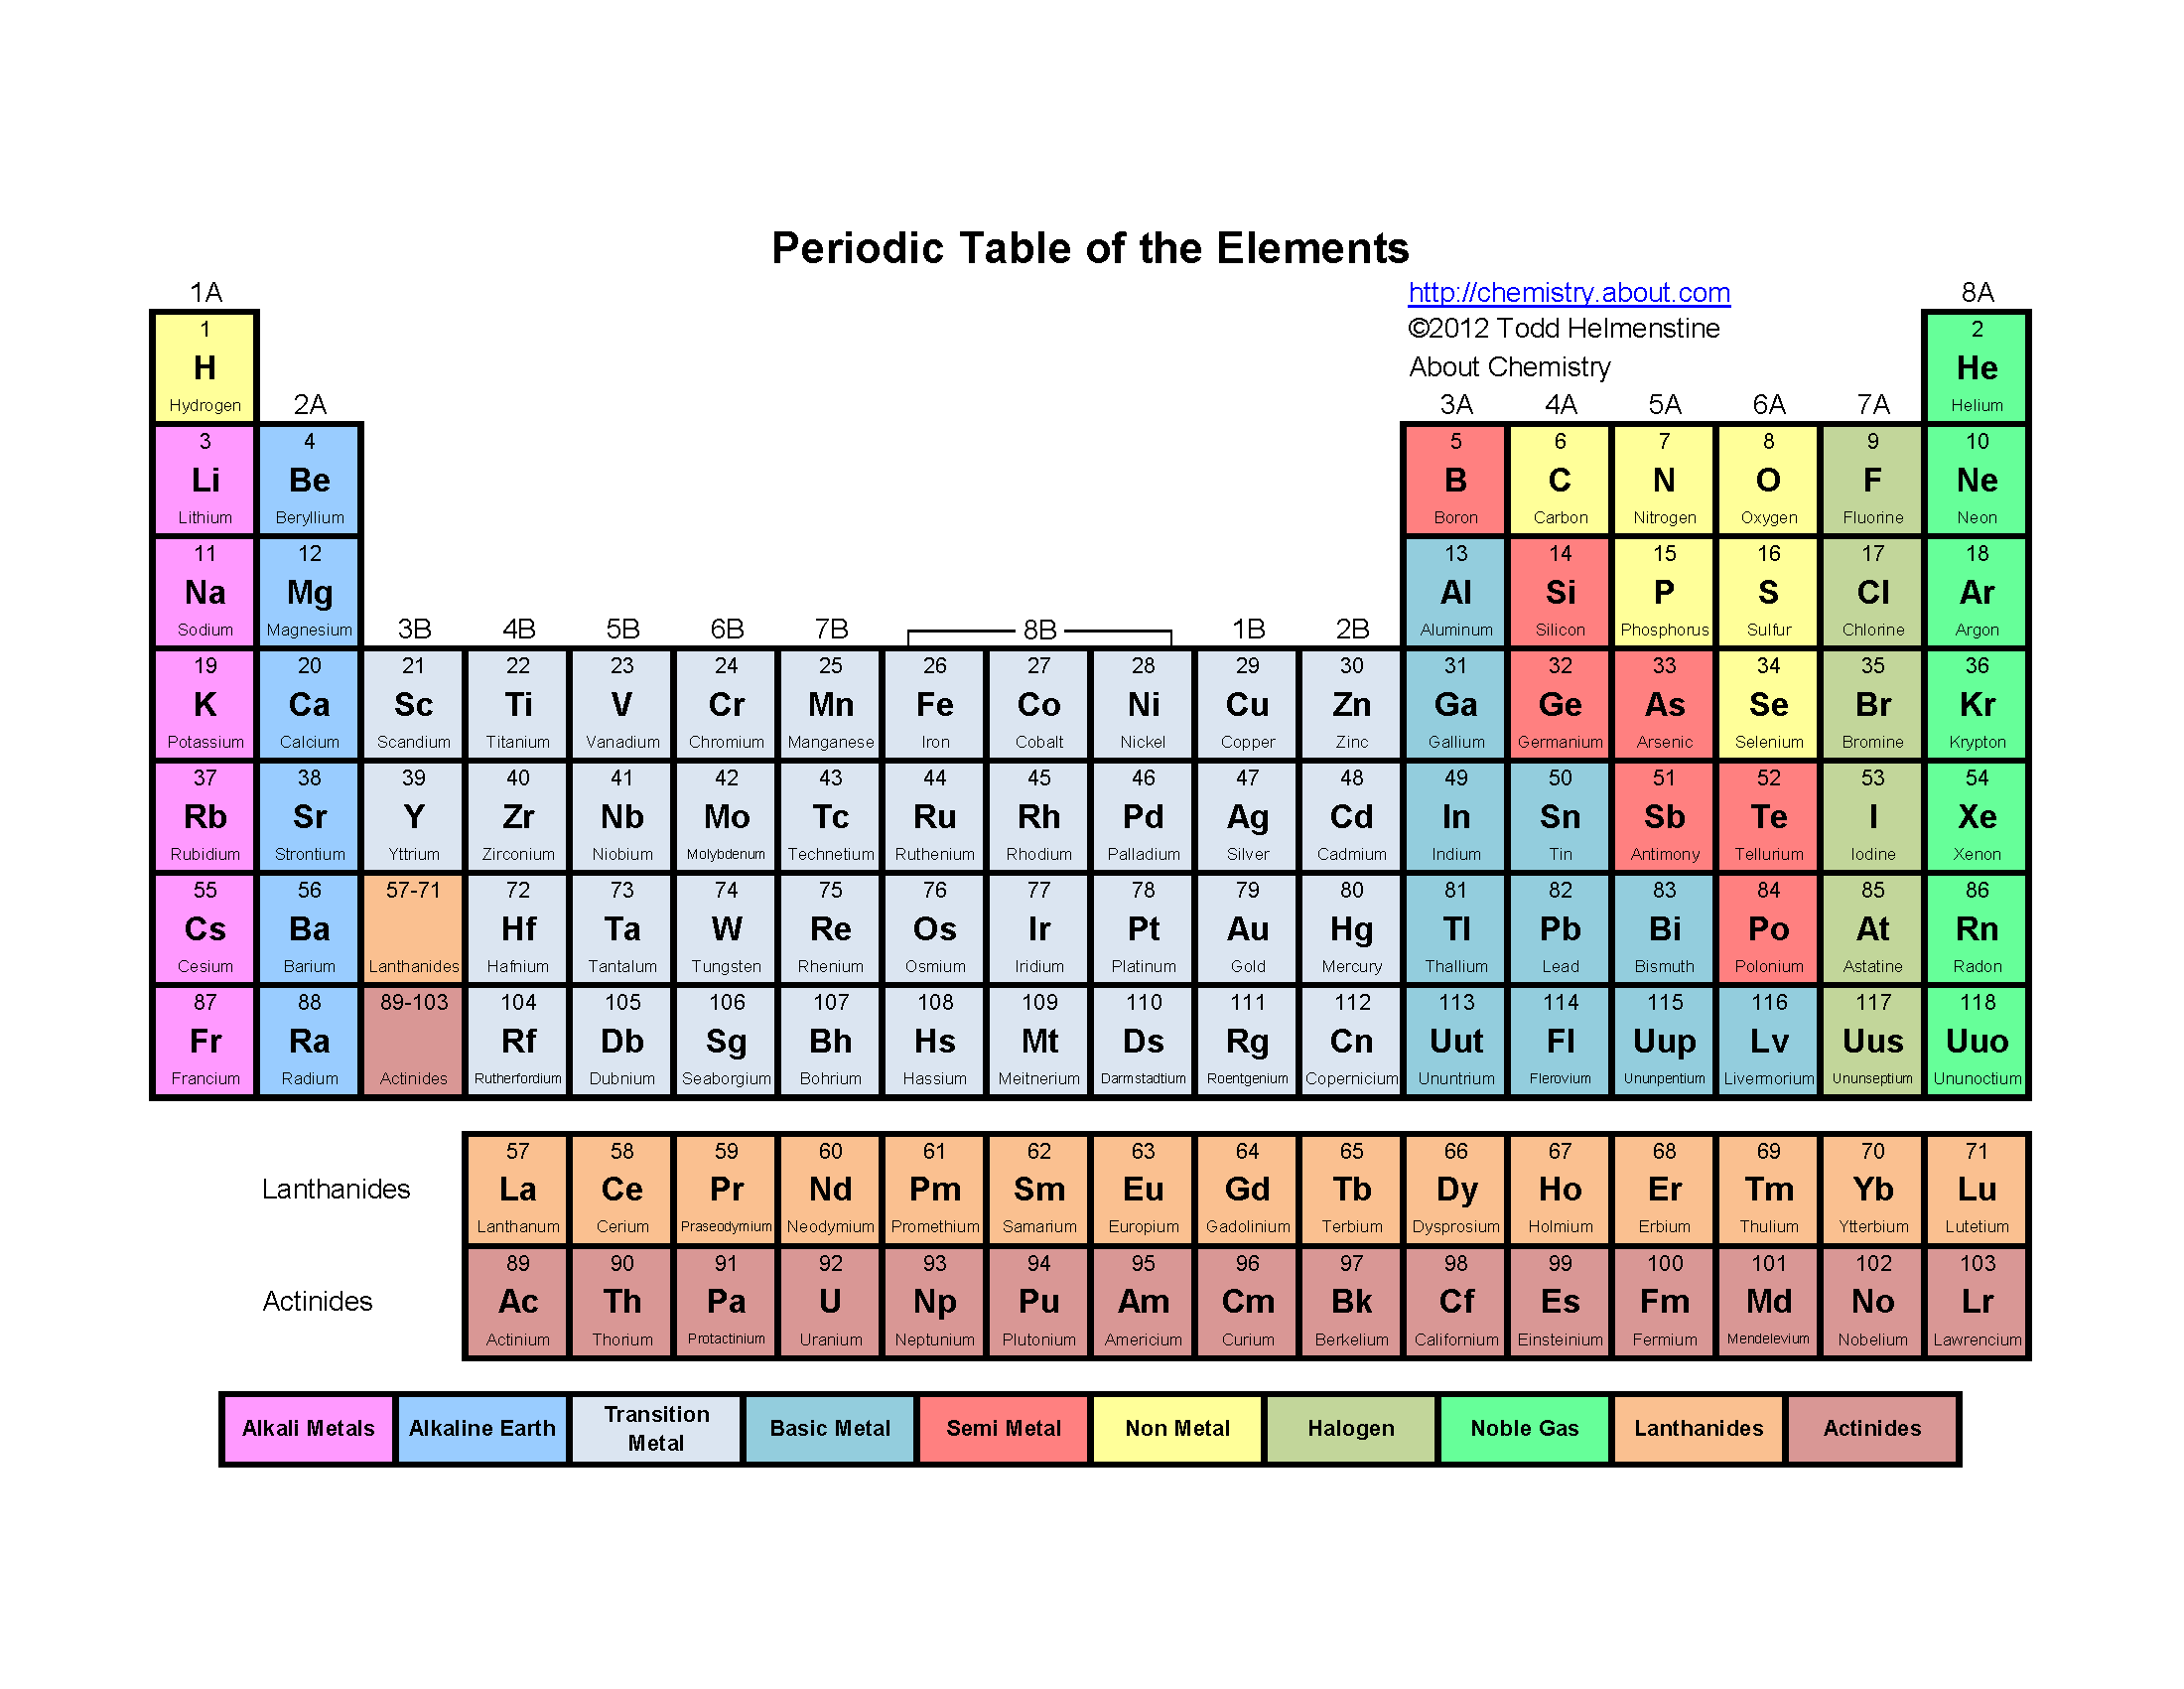 Best 25 periodic table with names ideas on pinterest nerd plays best 25 periodic table with names ideas on pinterest nerd plays smart boy and periodic elements gamestrikefo Choice Image